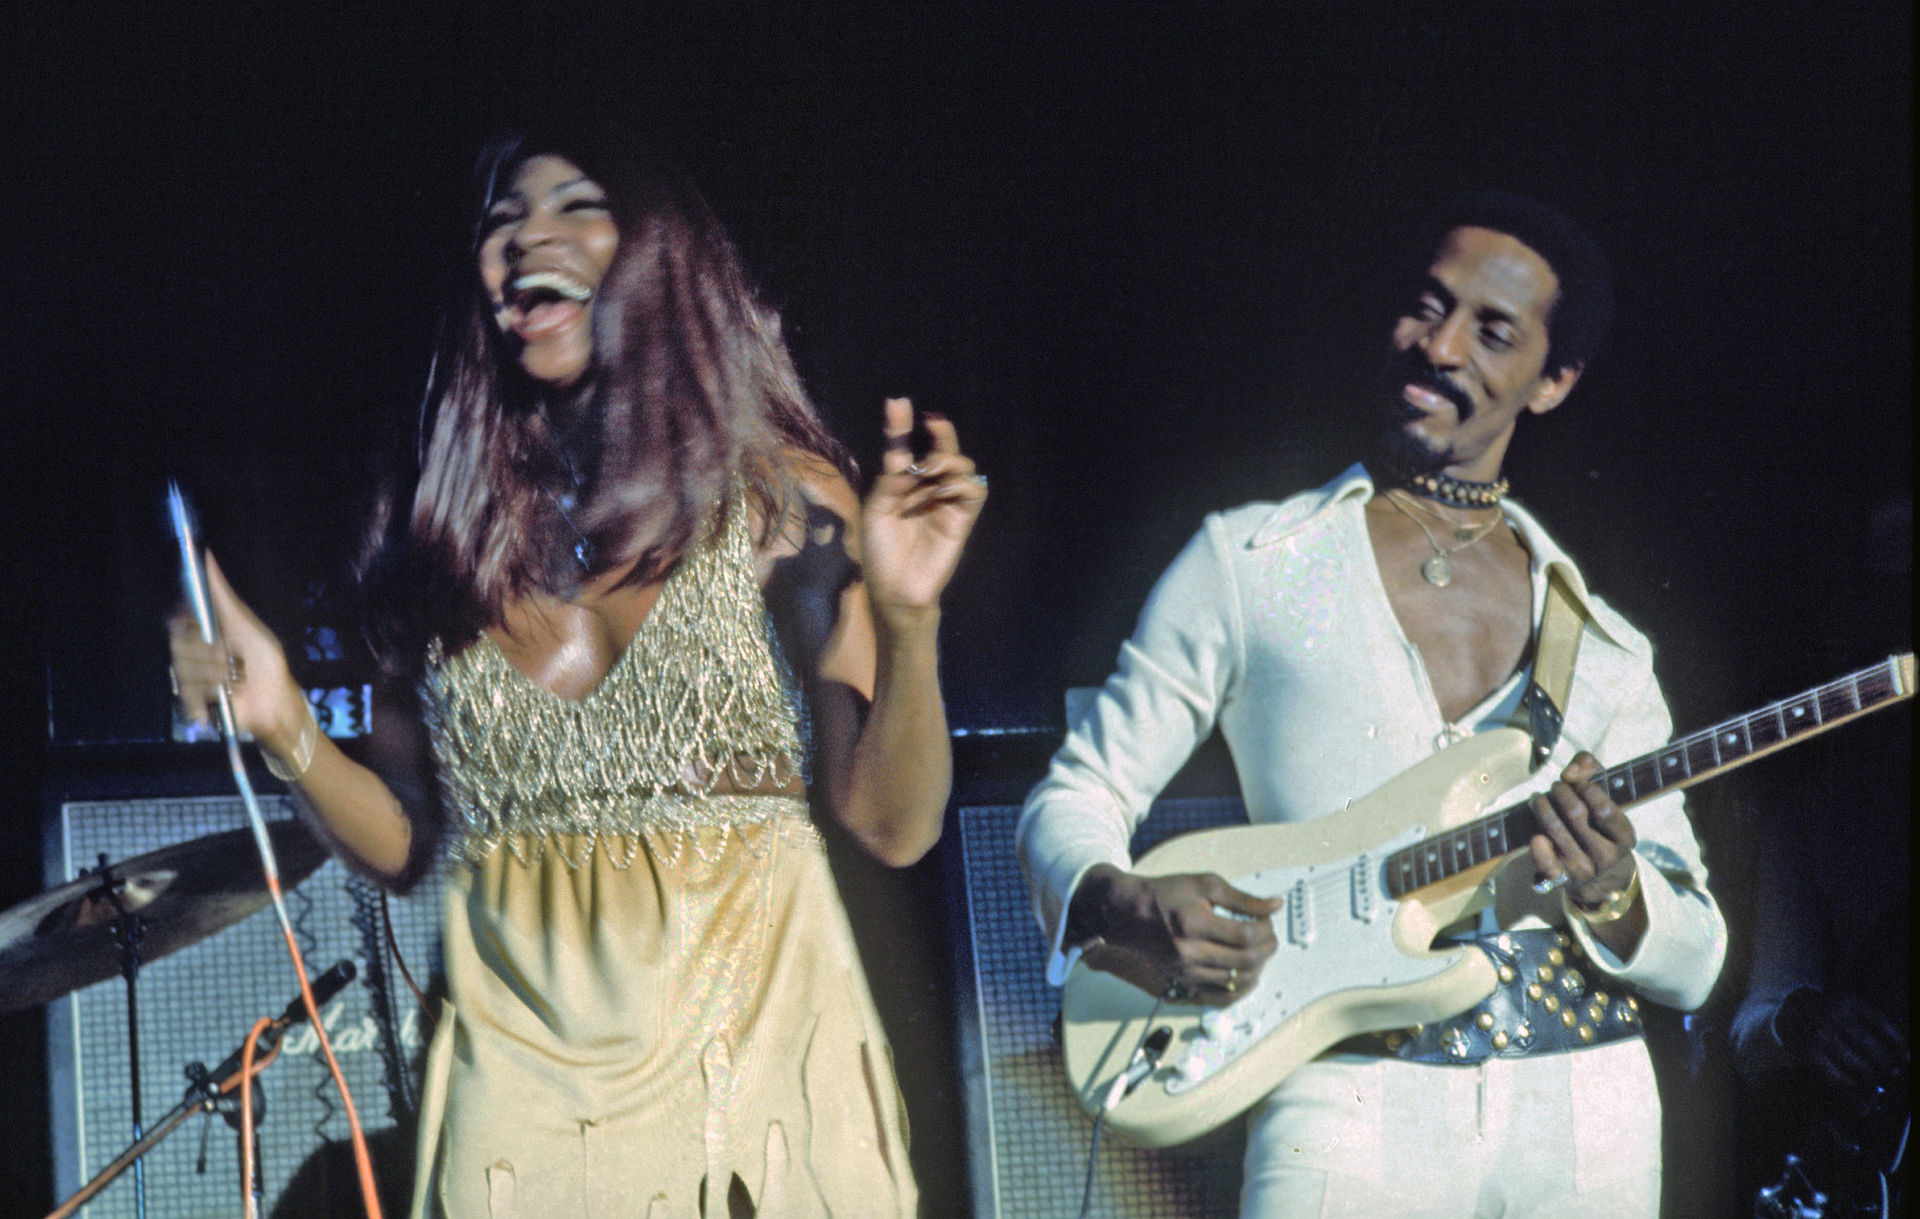 tina turner ike turner - Heinrich Klaffs - originally posted to Flickr as Ike & Tina Turner 231172_Dia14, CC BY-SA 2.0, https://commons.wikimedia.org/w/index.php?curid=12311964